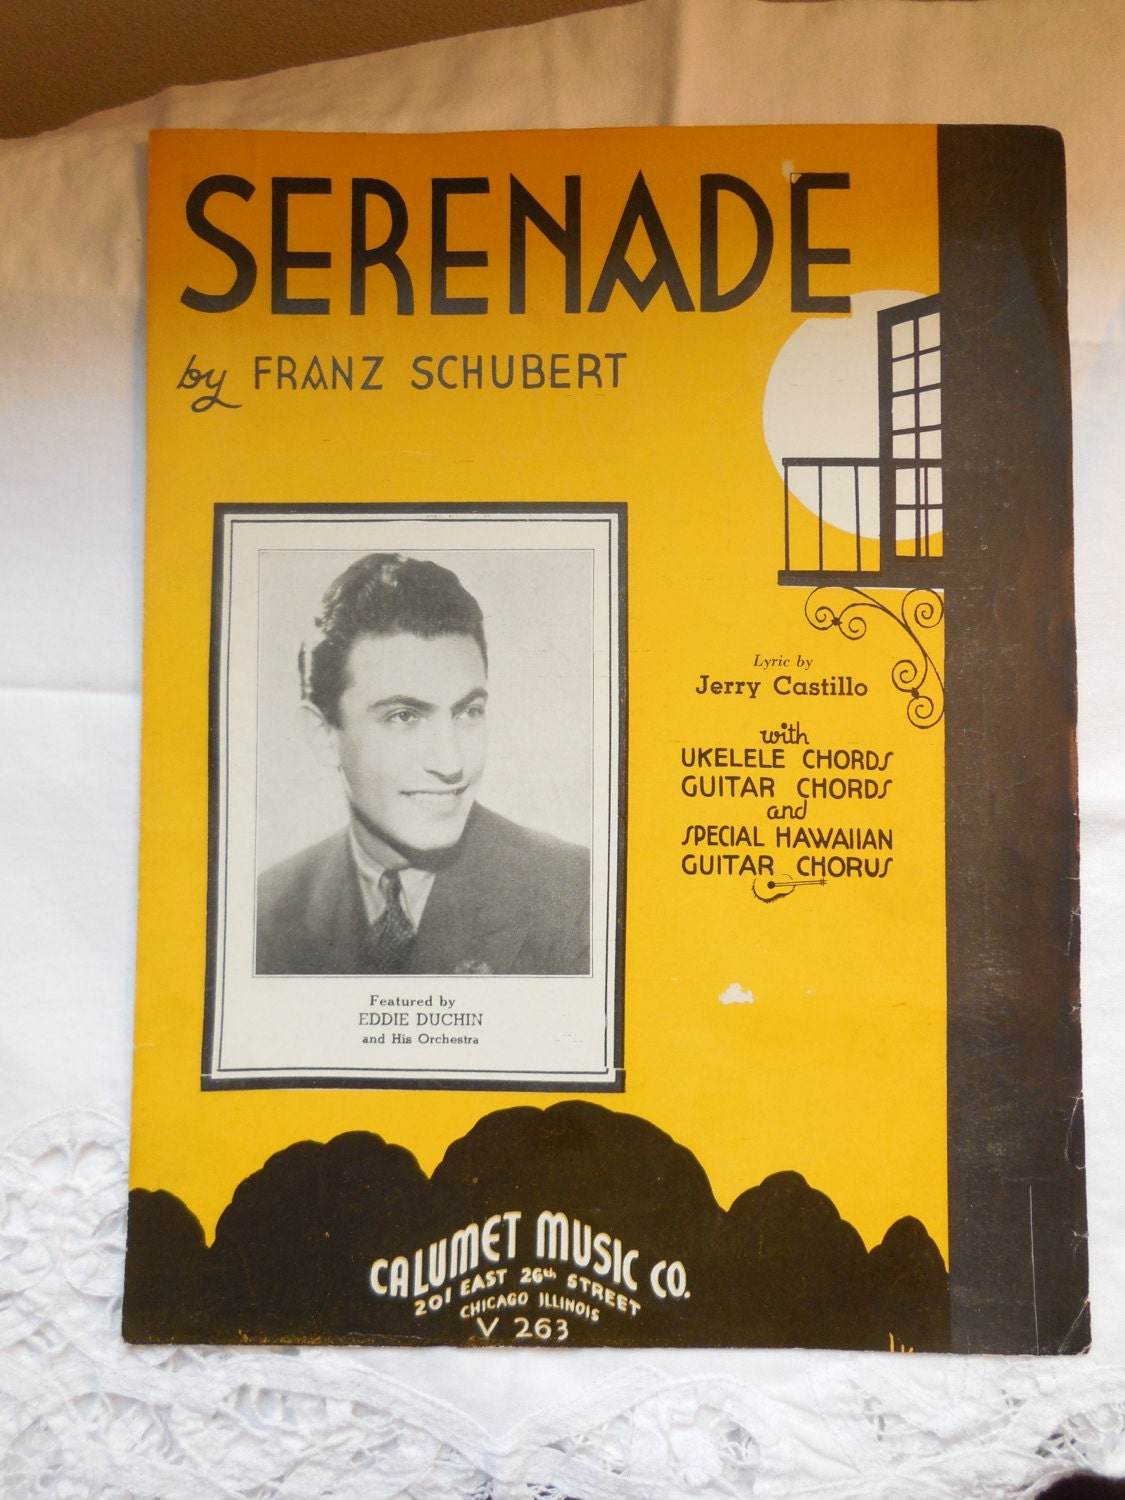 Serenade By Franz Schubert 1935 With Ukelele Chords Guitar Etsy